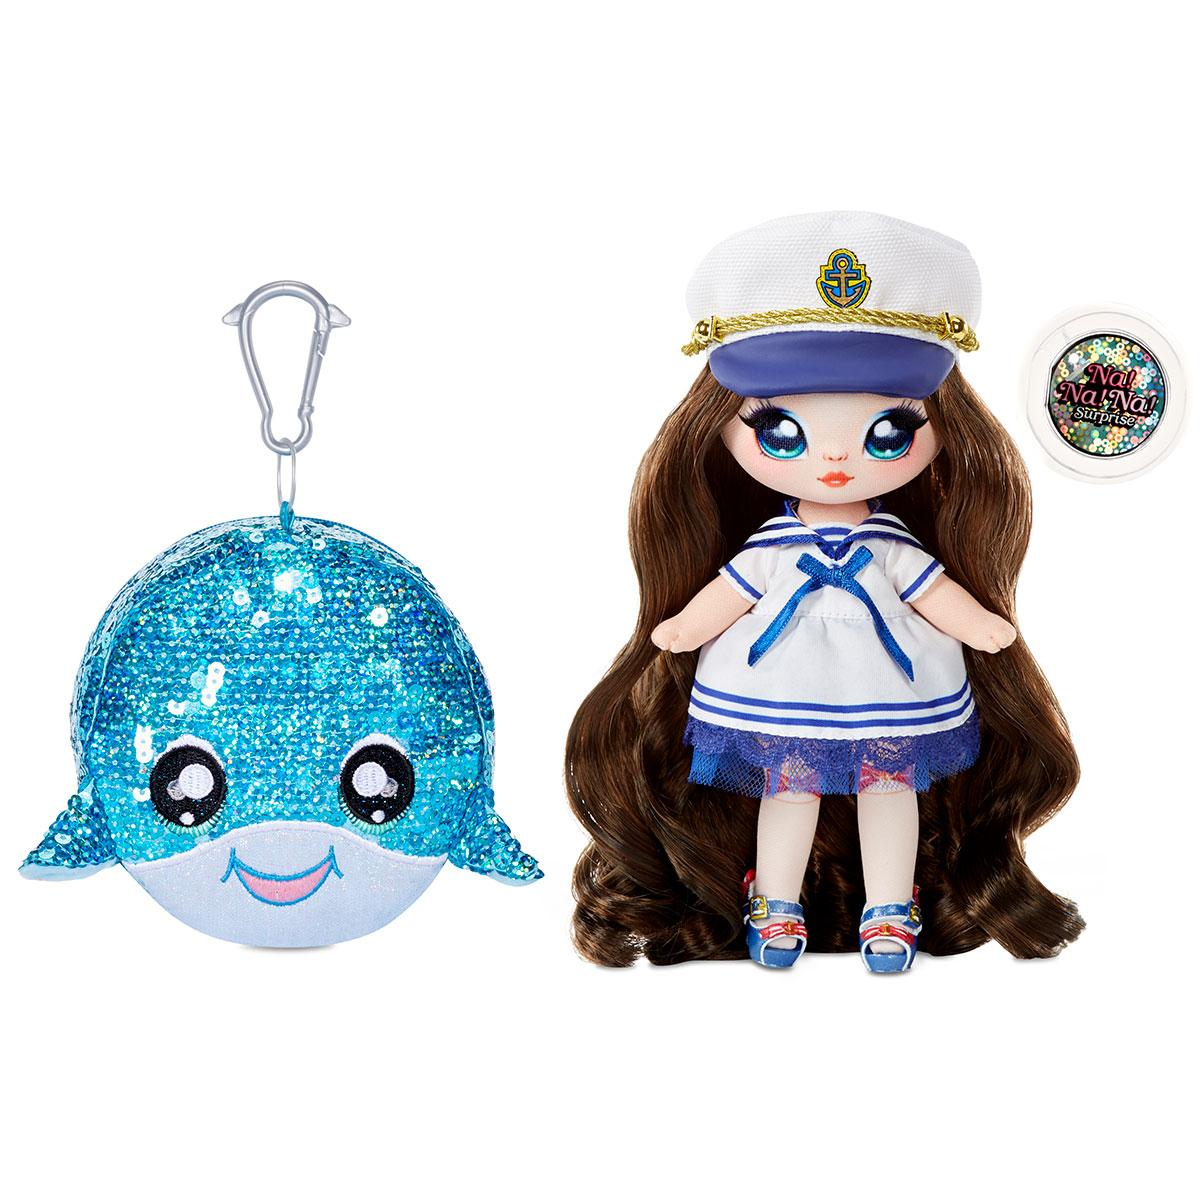 Кукла Na Na Na Surprise S3 W1 – Сейлор Блу Na! Na! Na! Surprise Sparkle Series 1 Sailor Blu 573753